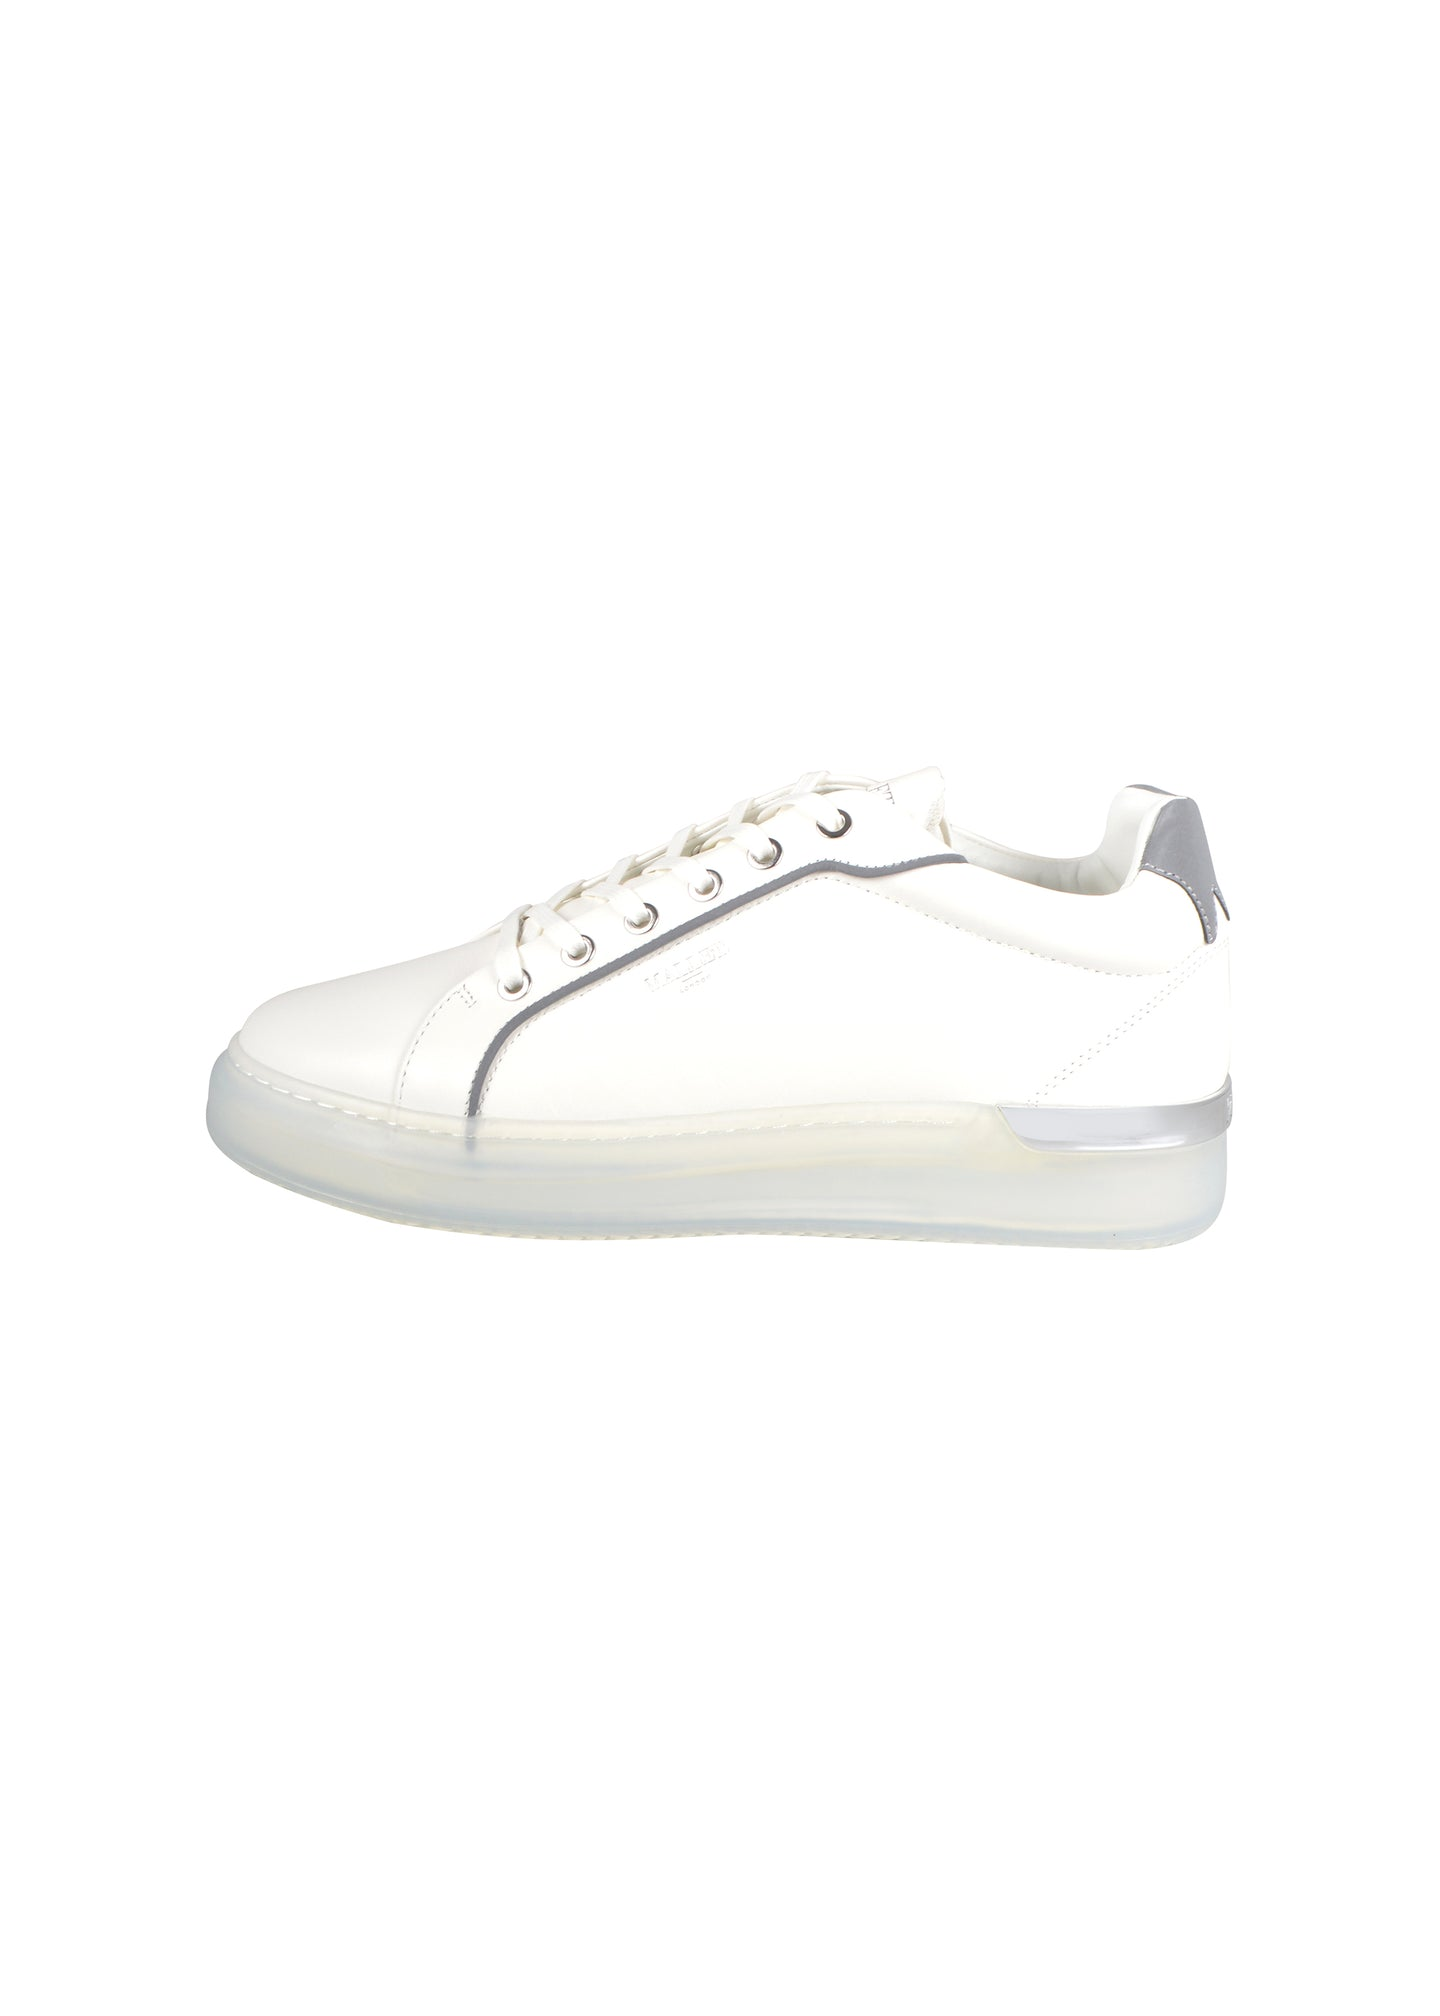 Mallet - New Iconic GRFTR Clear Sole Reflect Trainer - 100510 - White